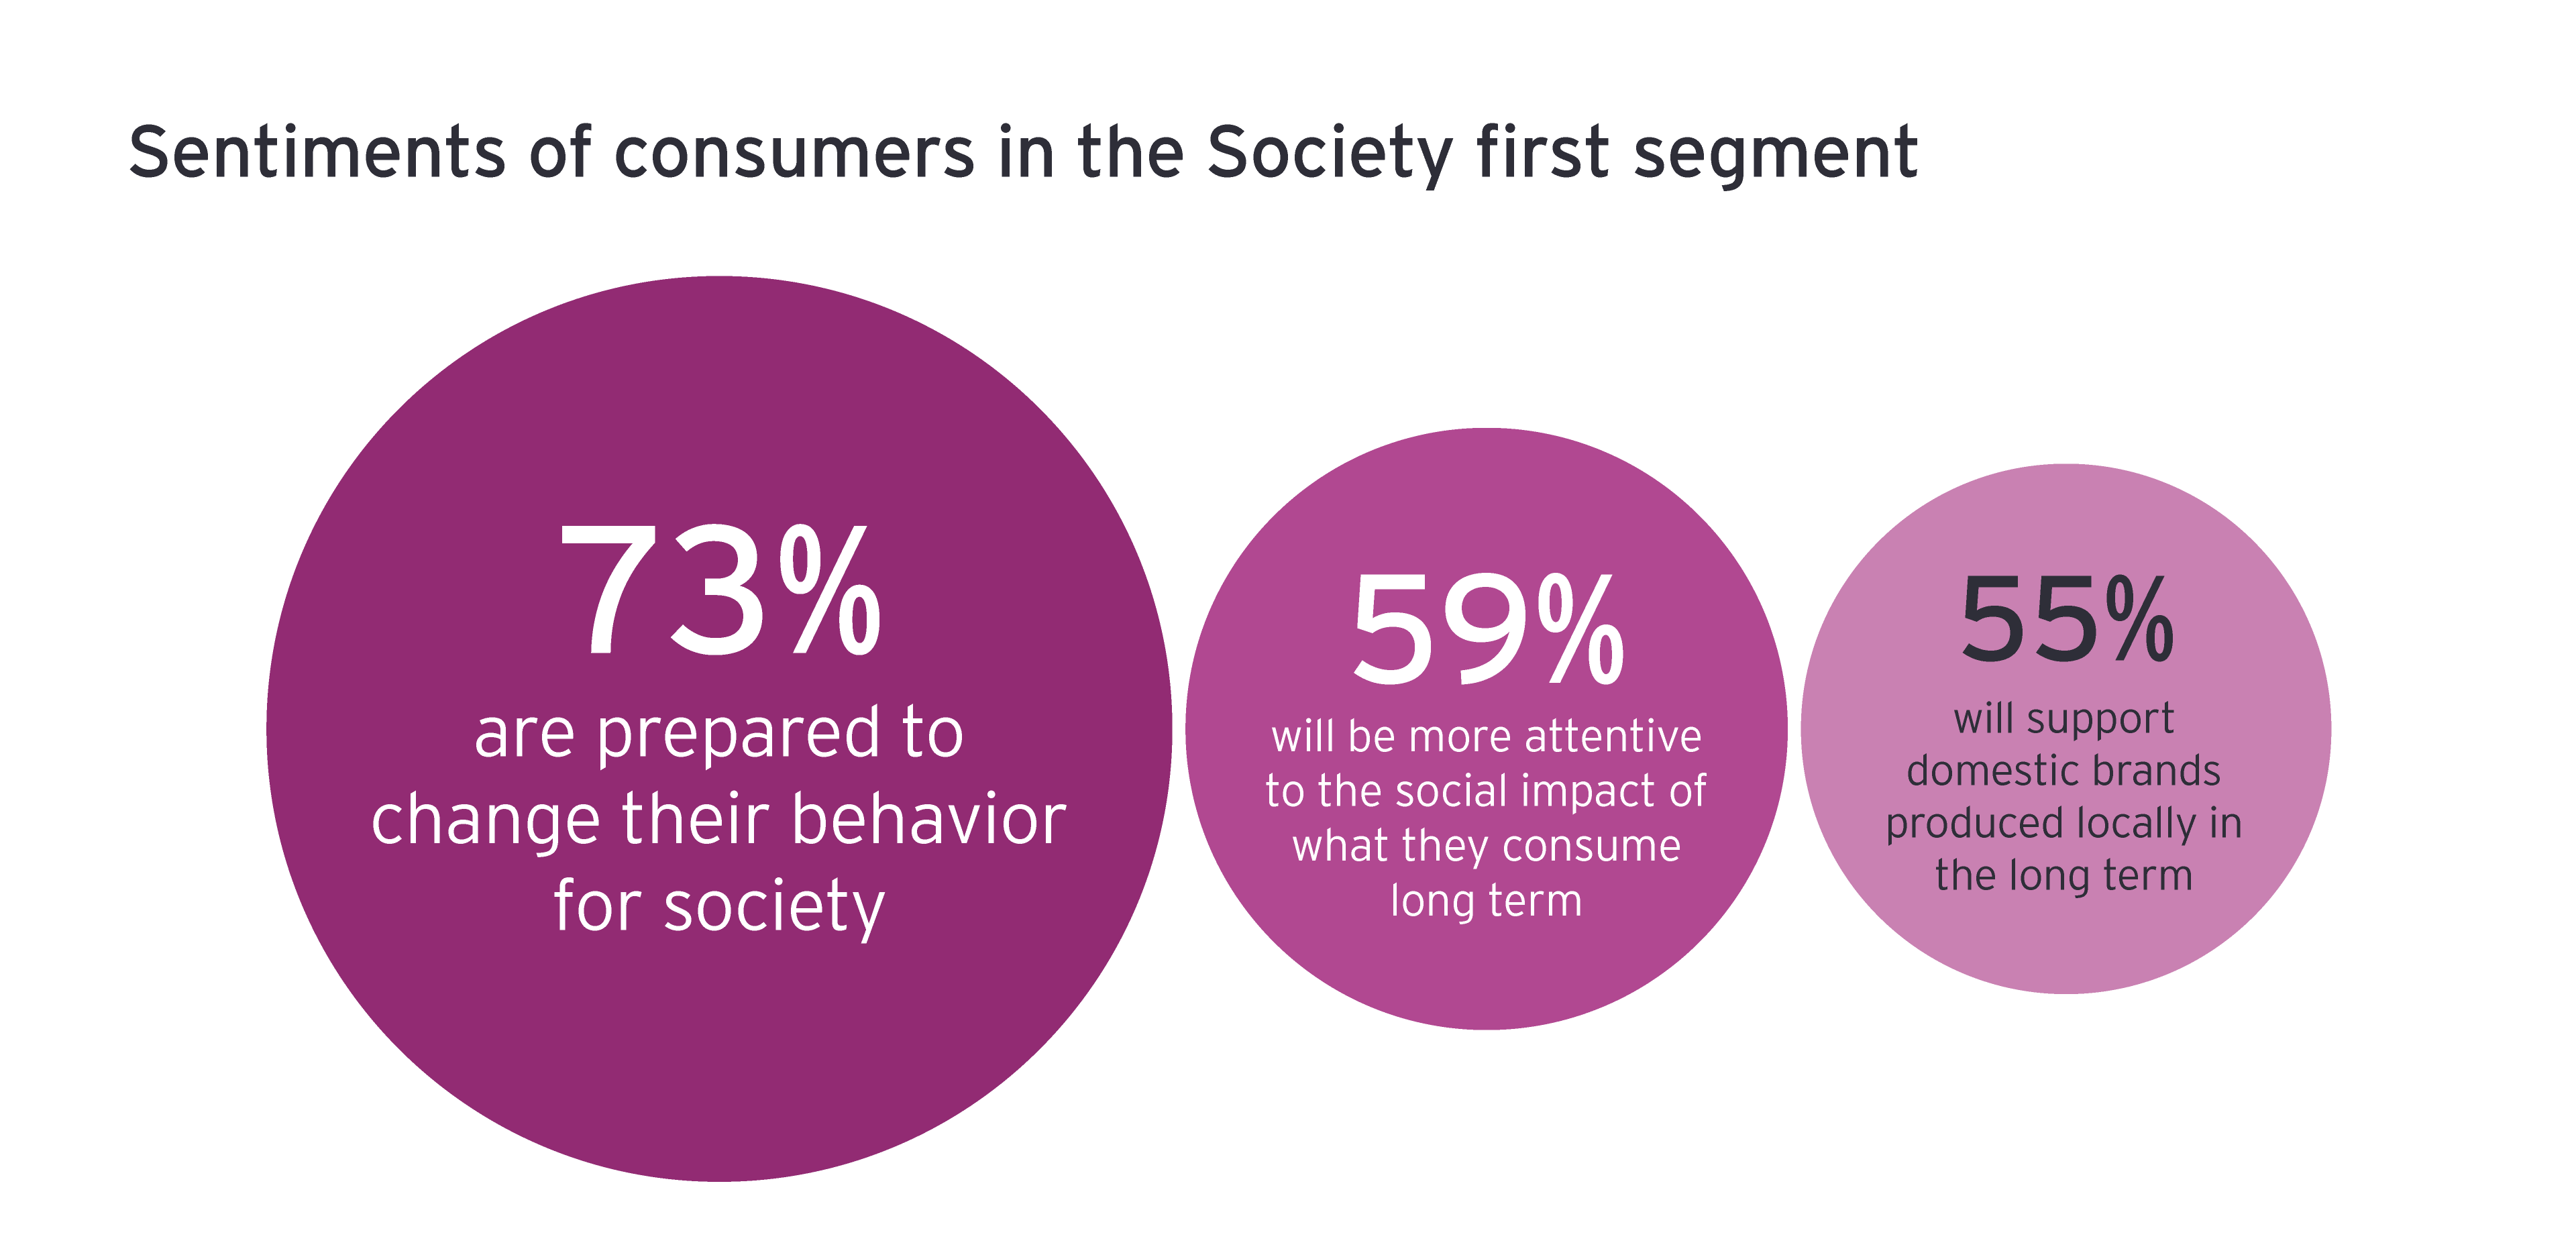 Sentiments of consumers in the Society first segment